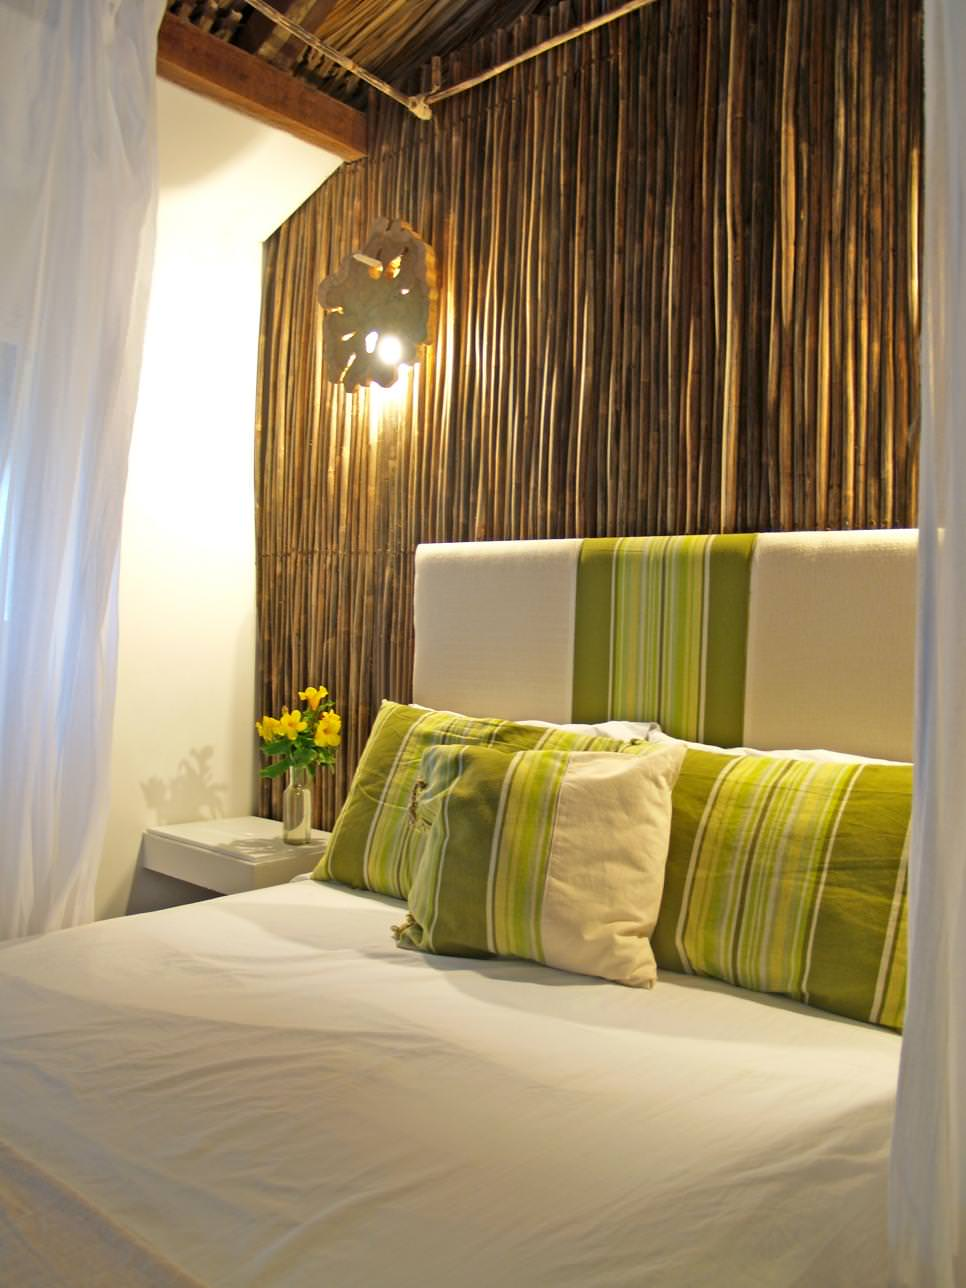 Wall Color Design For Bedroom : Accent wall paint designs decor ideas design trends